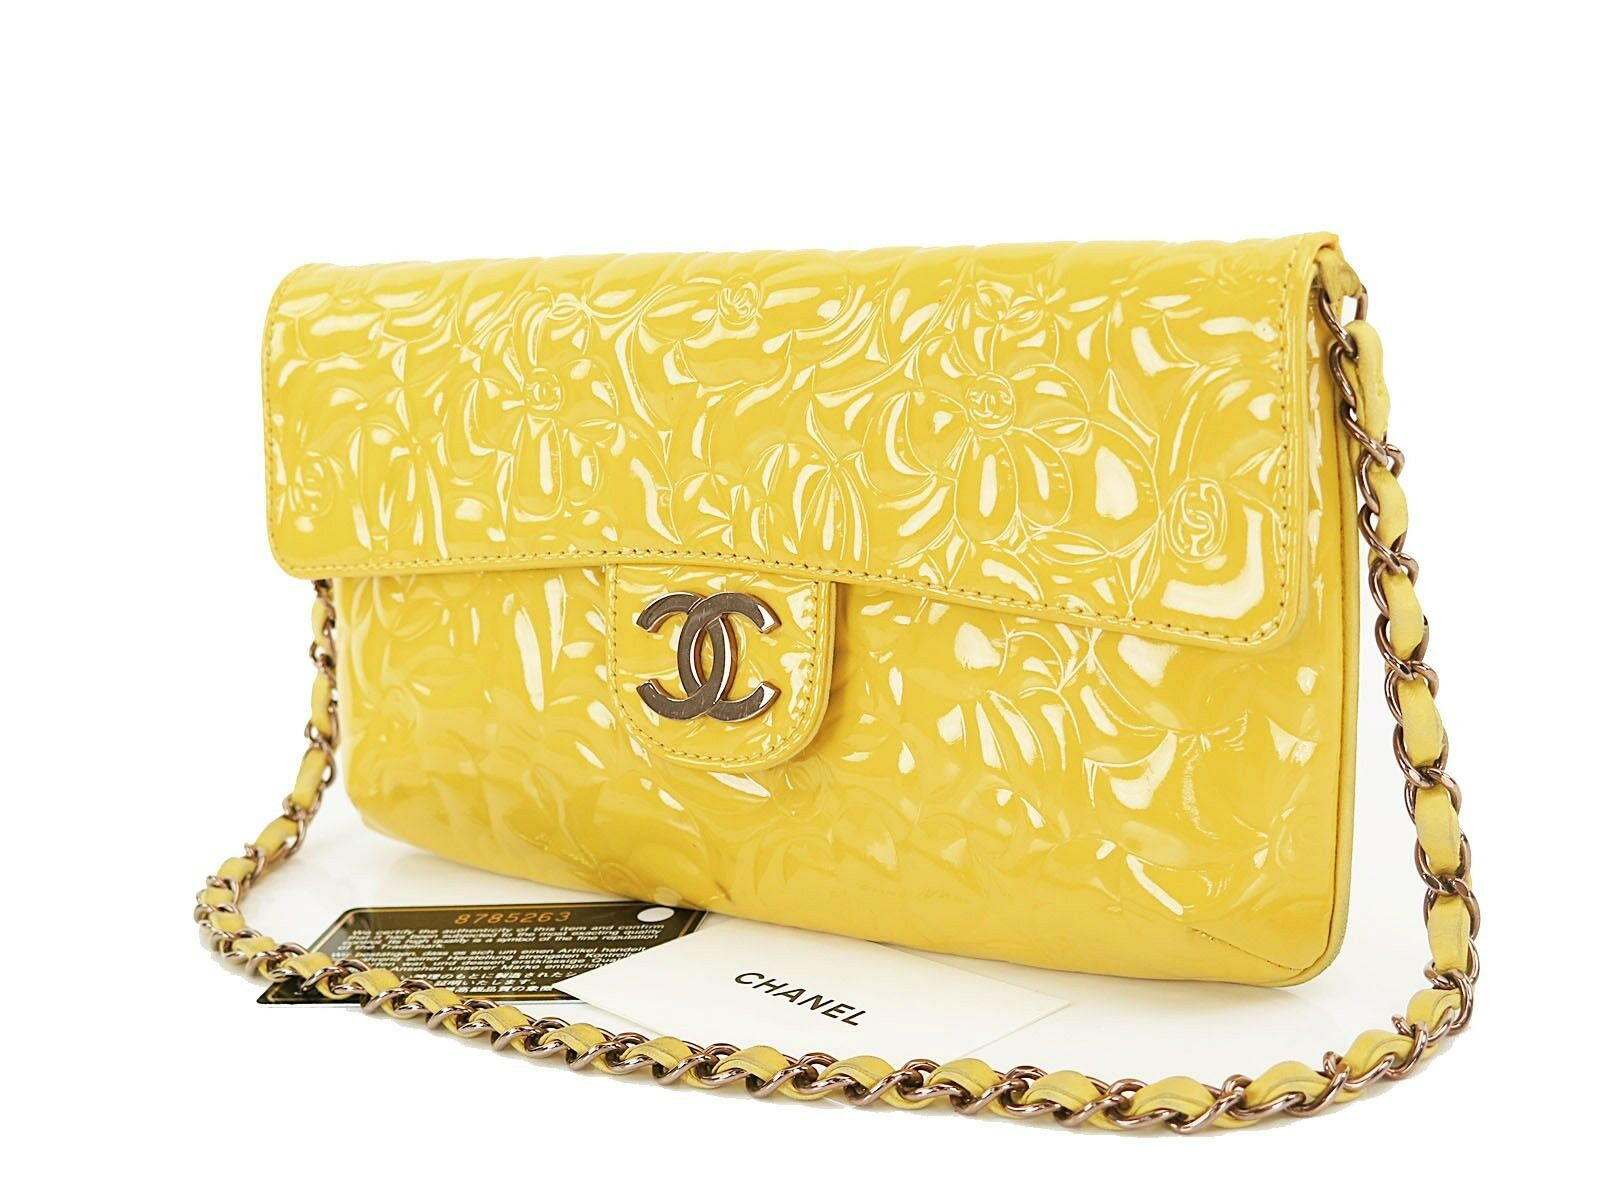 Auth CHANEL Yellow Camellia Patent Leather Chain Shoulder Bag Purse #25296